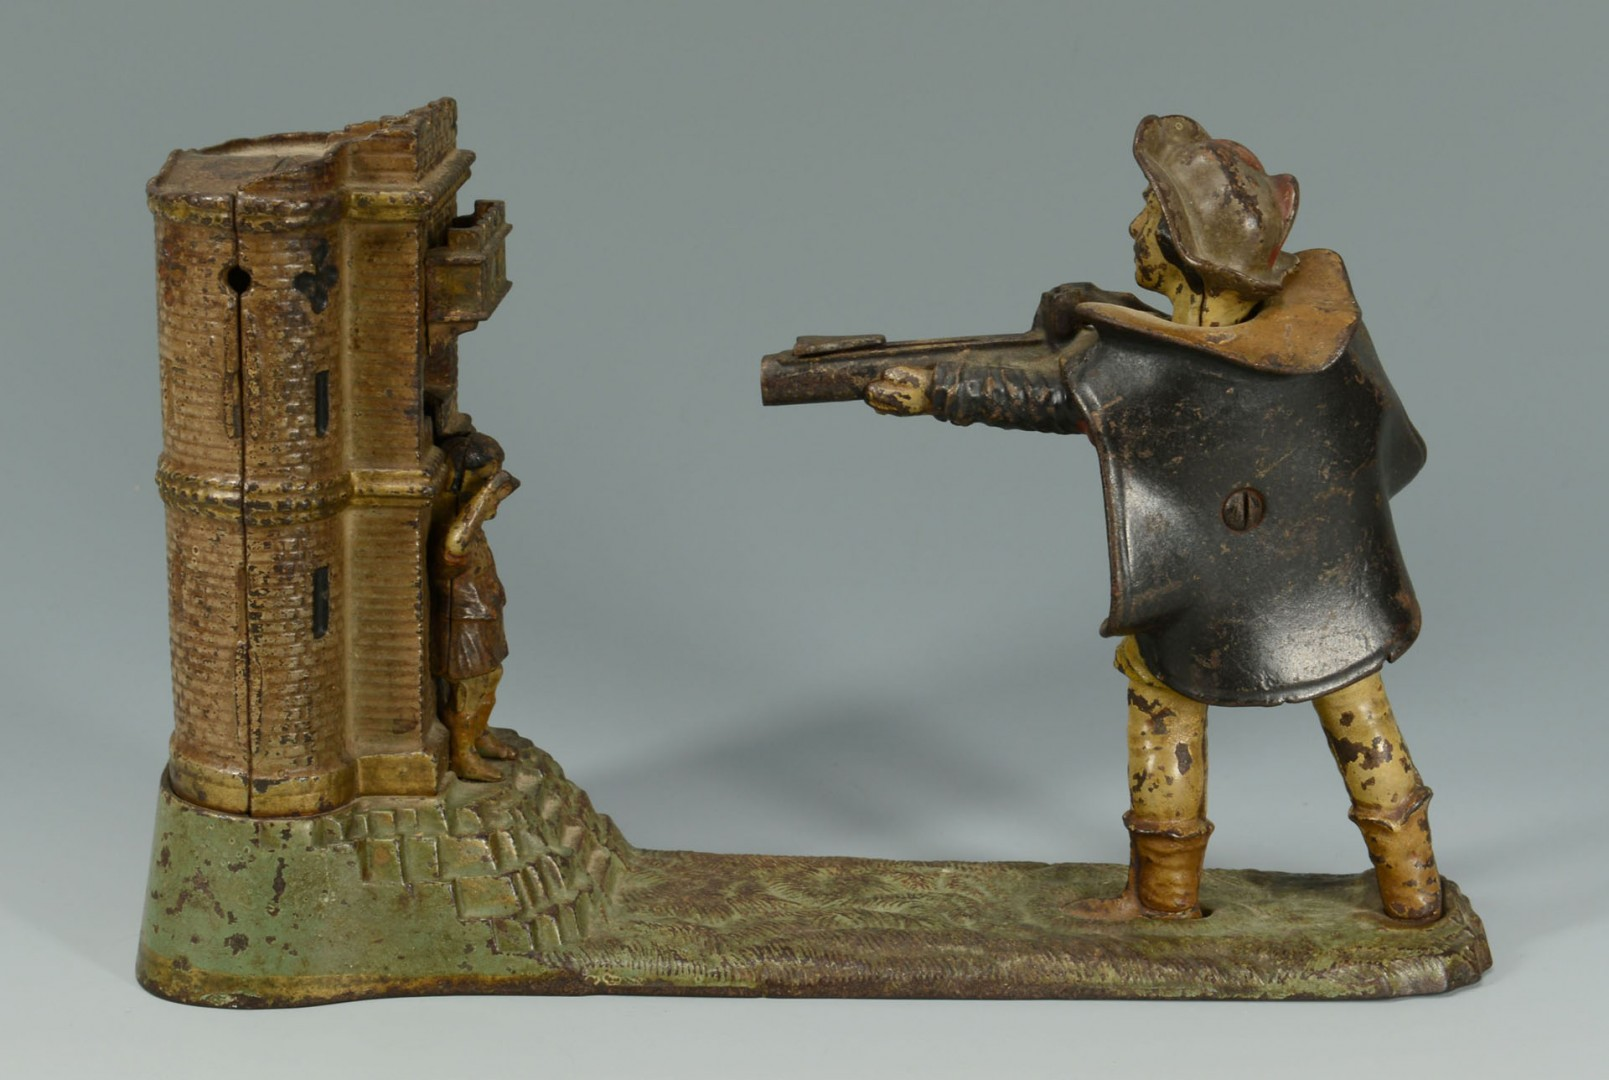 Lot 584: William Tell Cast Iron Mechanical Bank